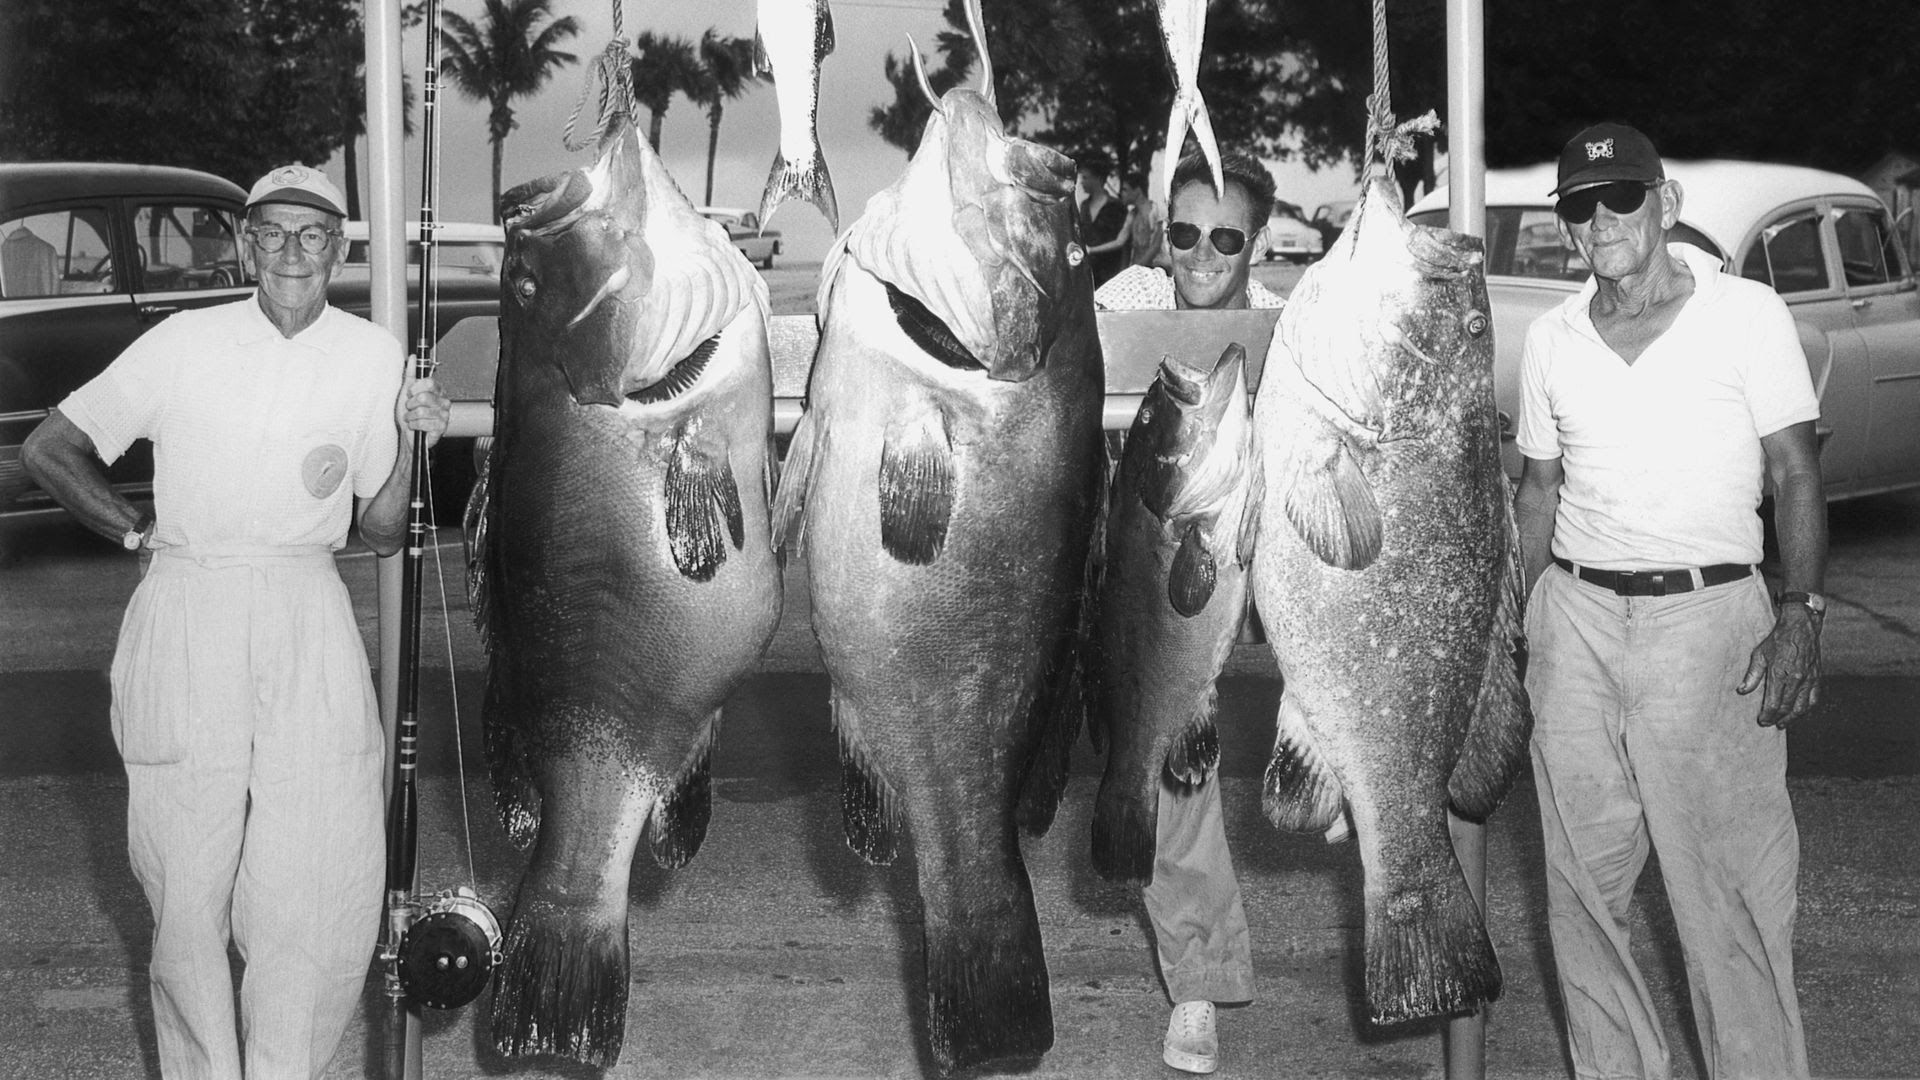 Captain Jack Weygant (right) poses with two men and three goliath grouper caught near Fort Lauderdale, circa 1960.